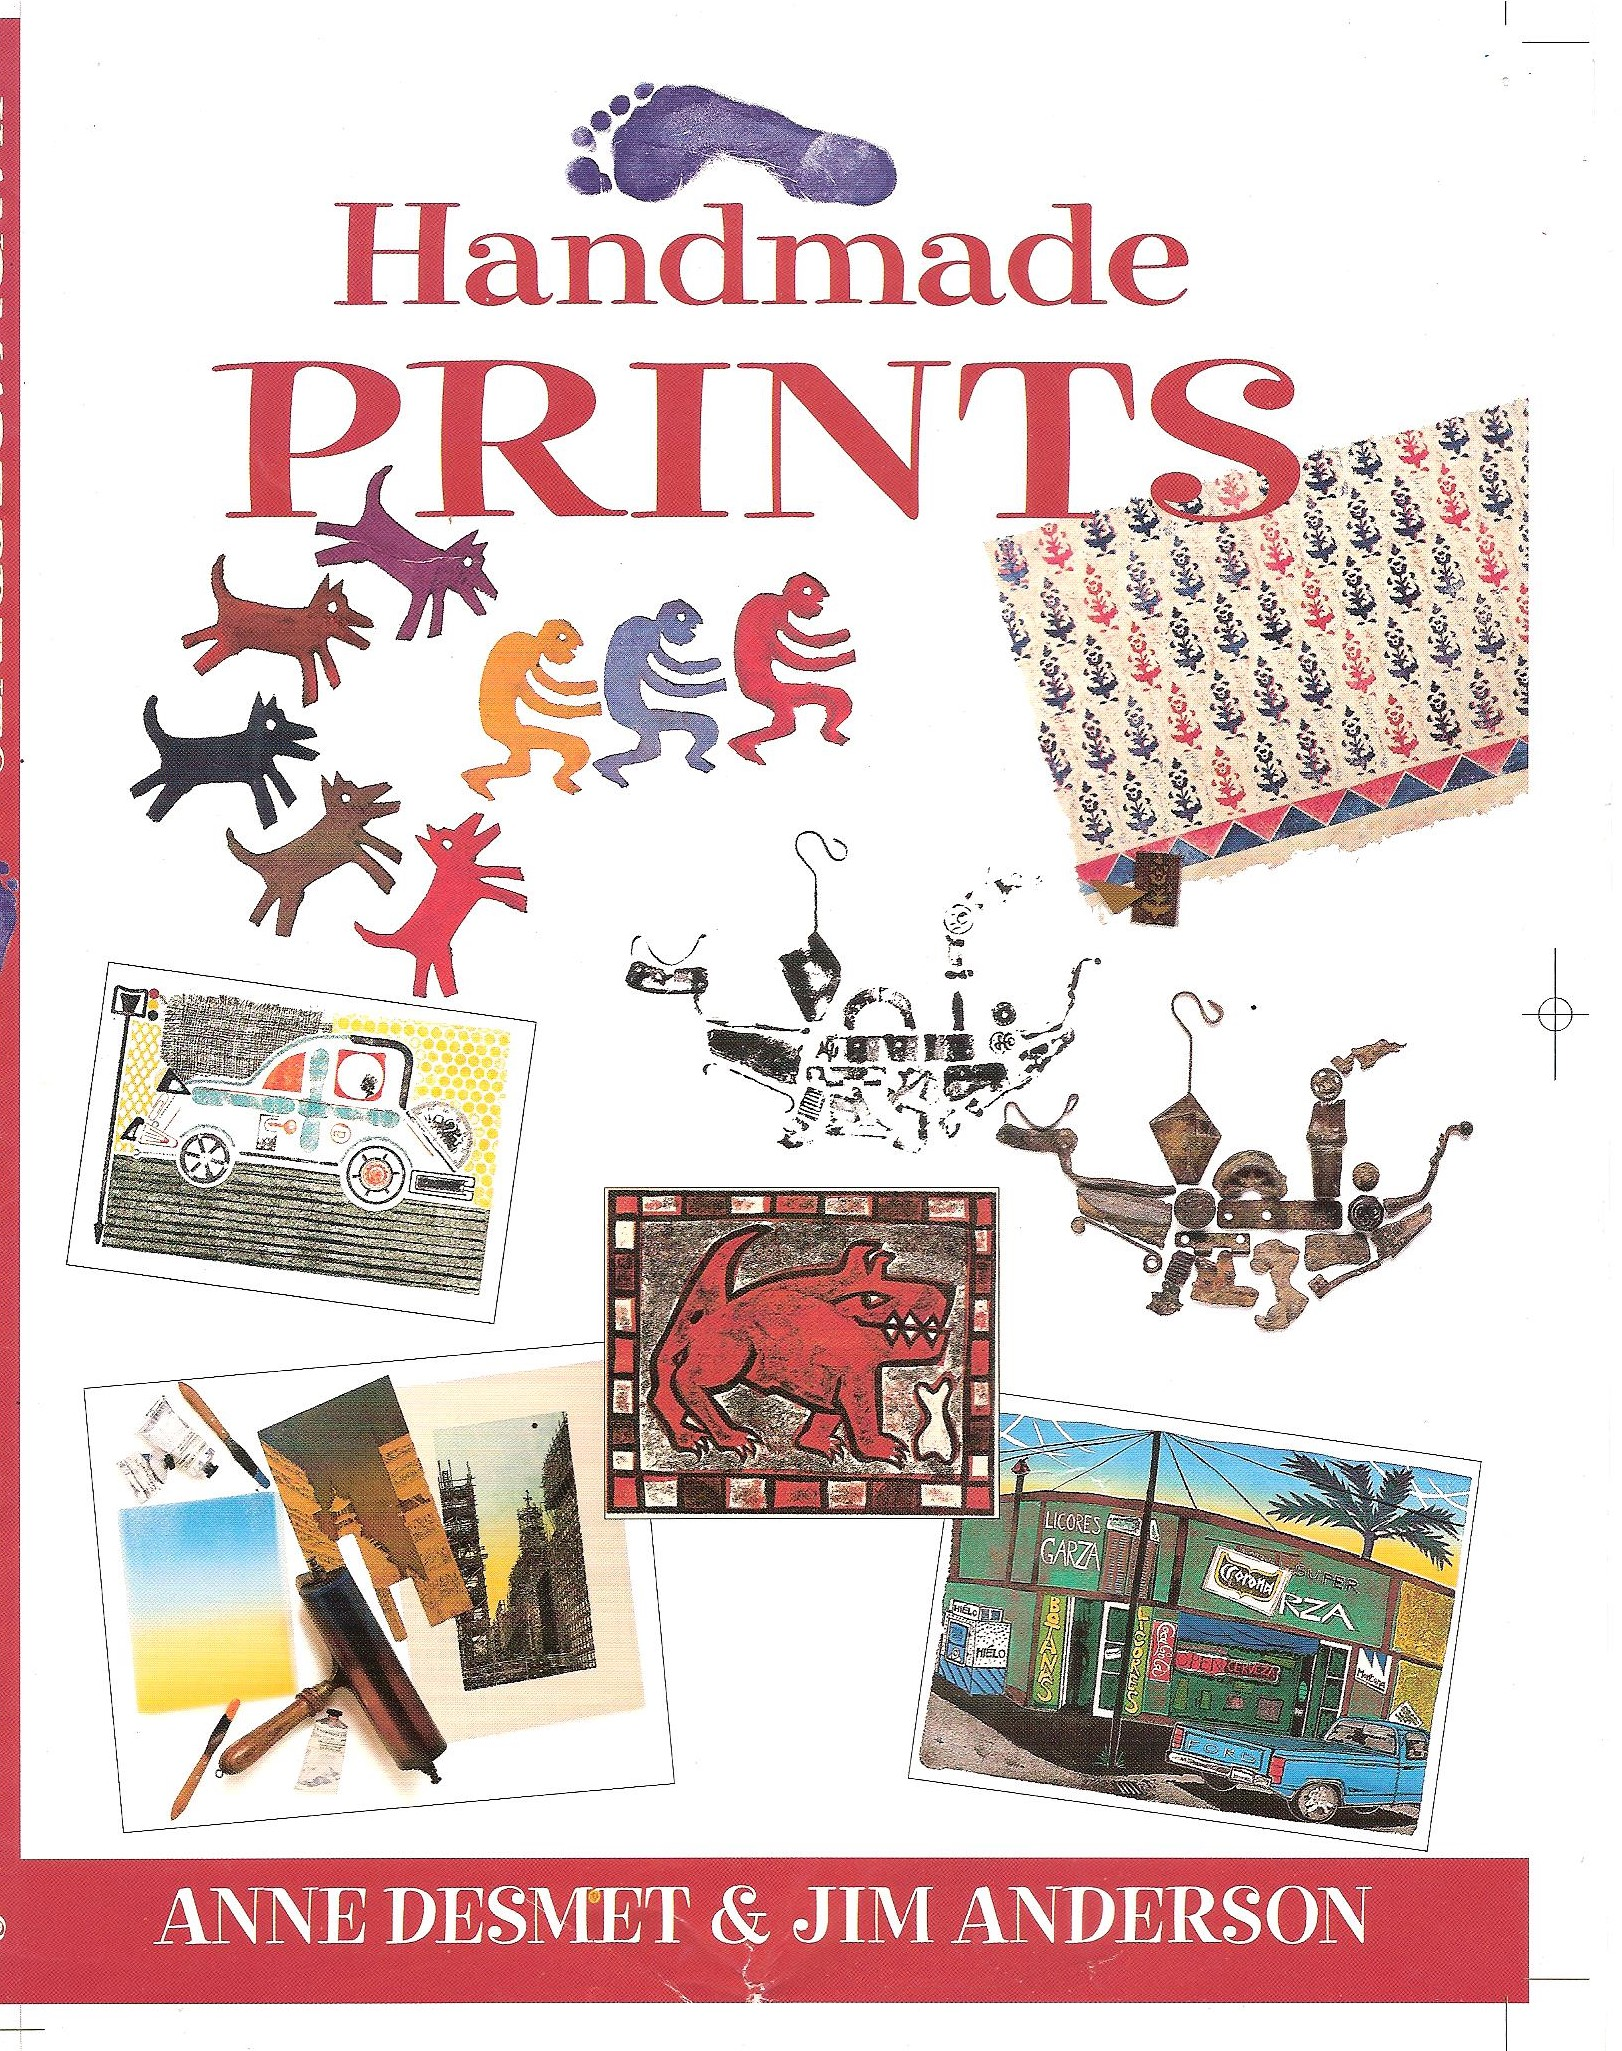 Handmade Prints front cover